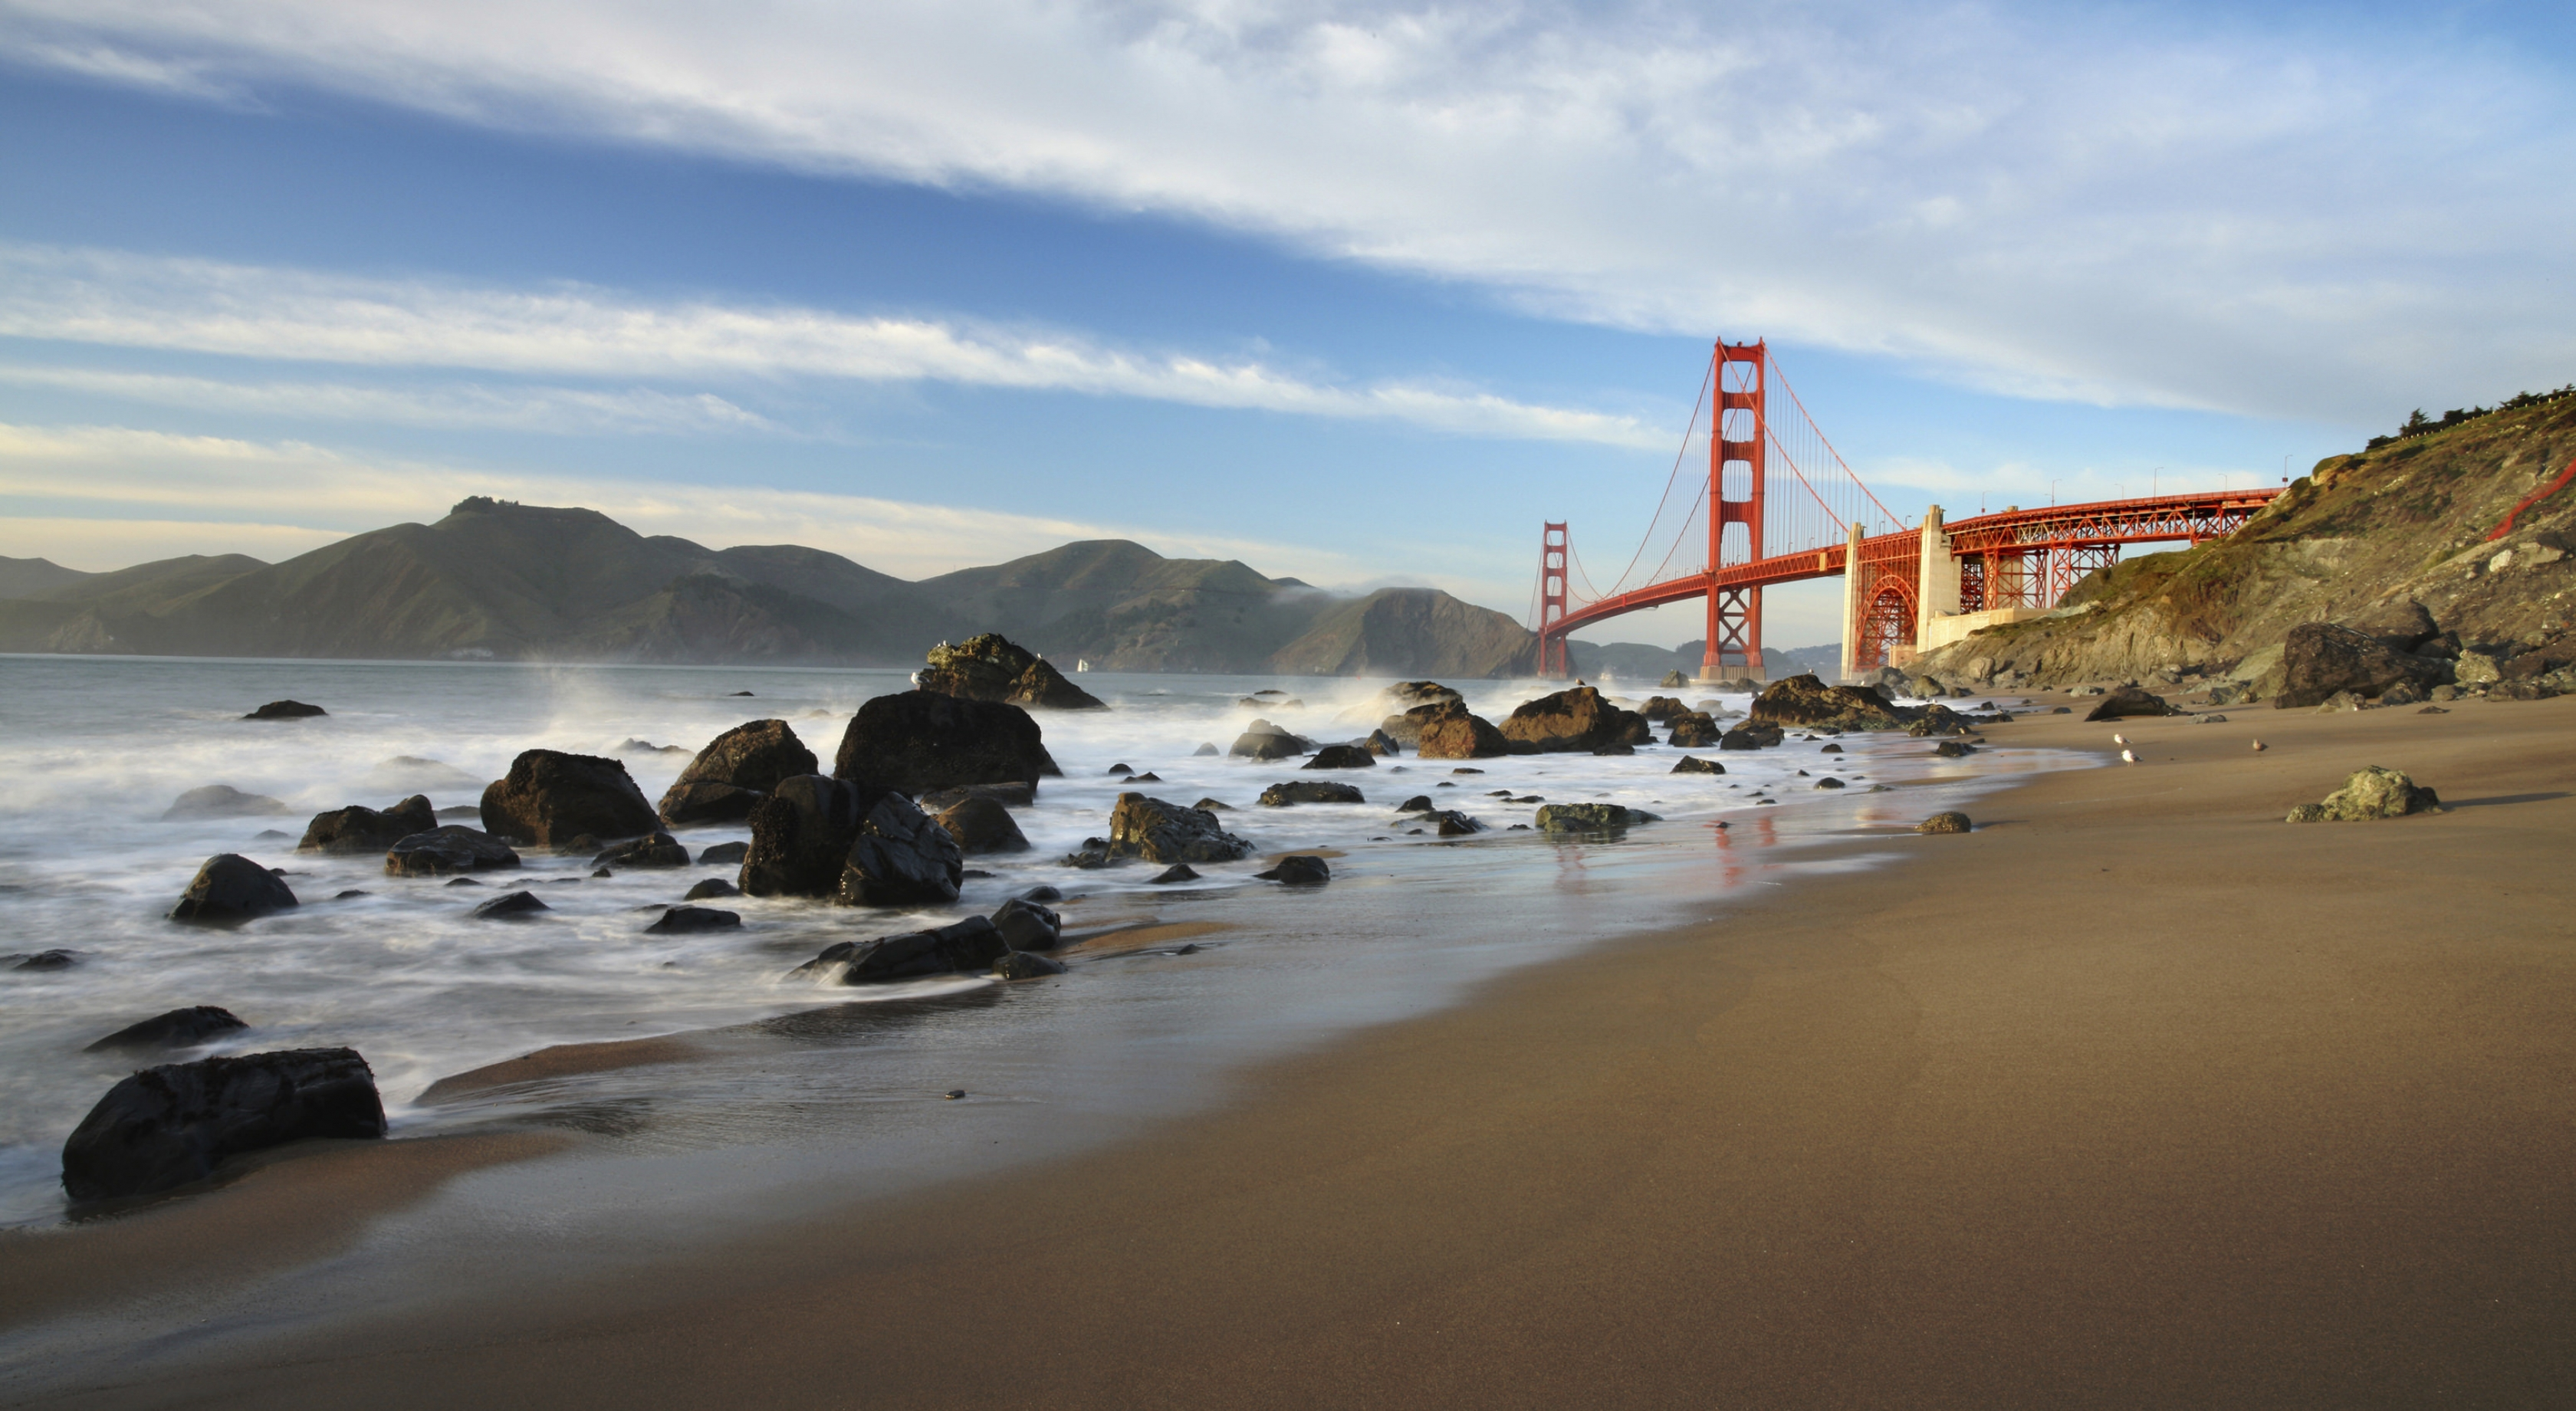 A view of the Golden Gate Bridge from the Marin Beach.